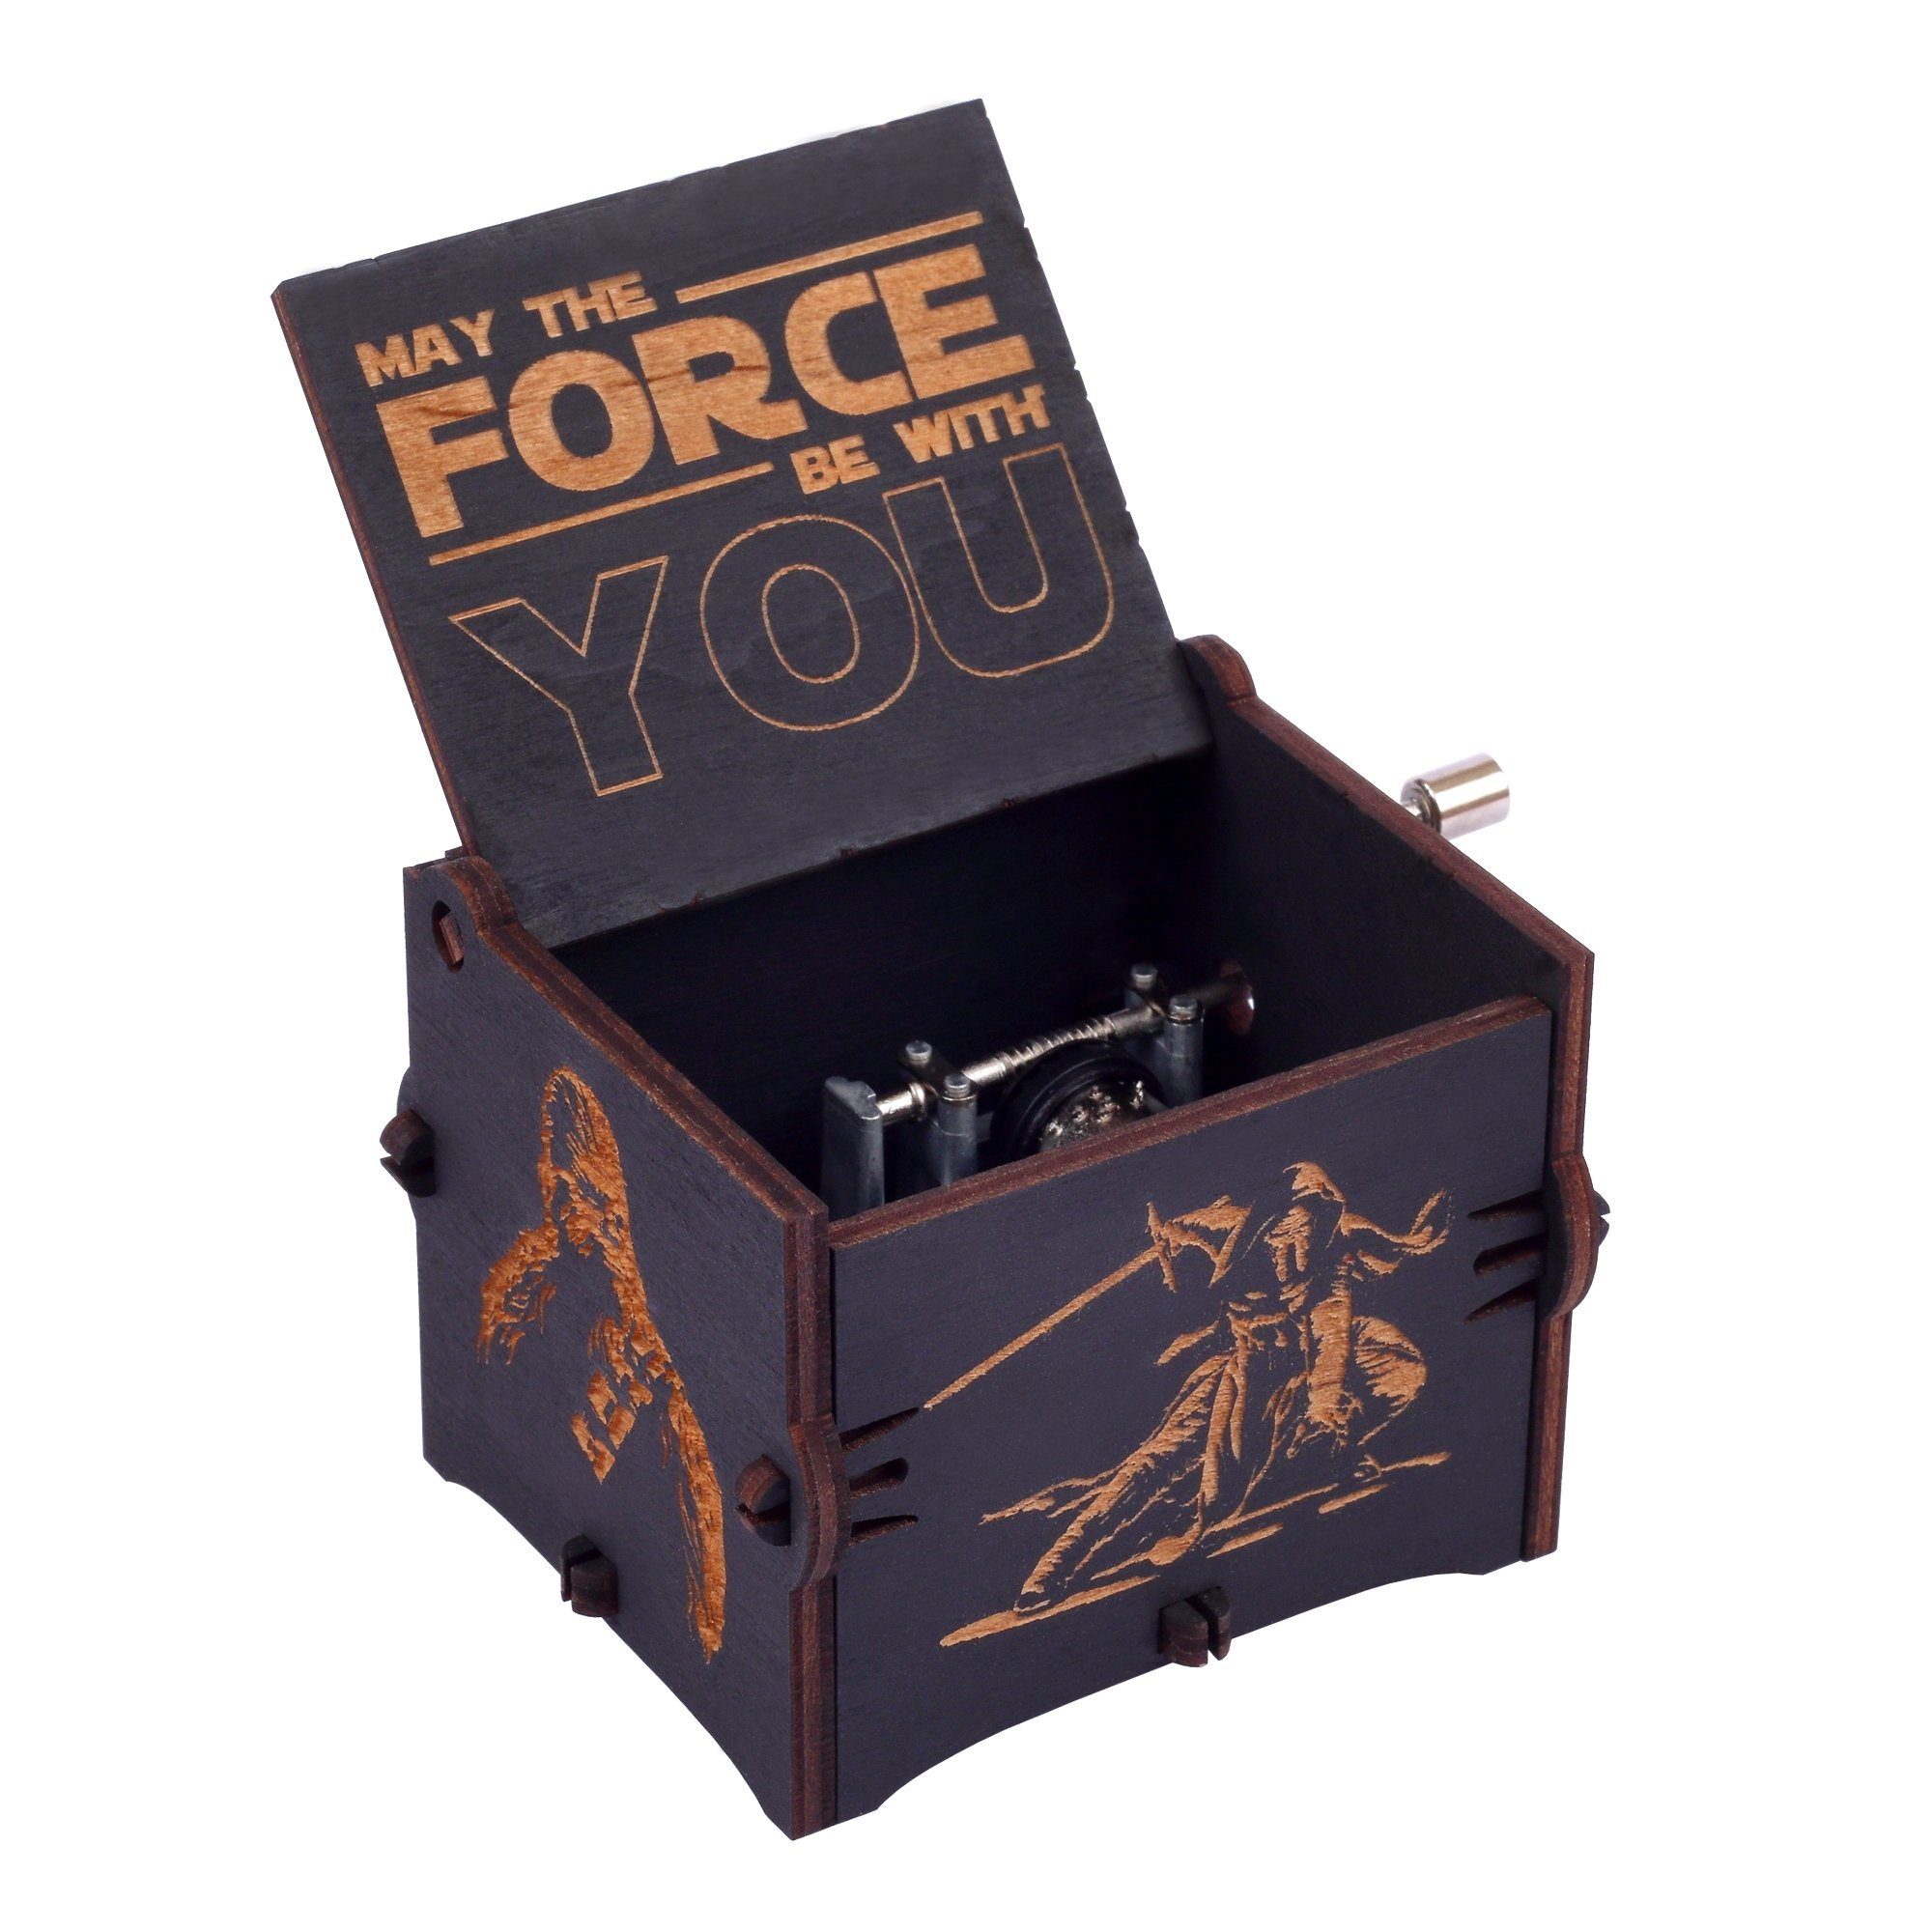 Enjoy The Wood Star Wars Music Box Wooden Star Wars Custom Gift for Boyfriend Gift for Brother by Enjoy The Wood